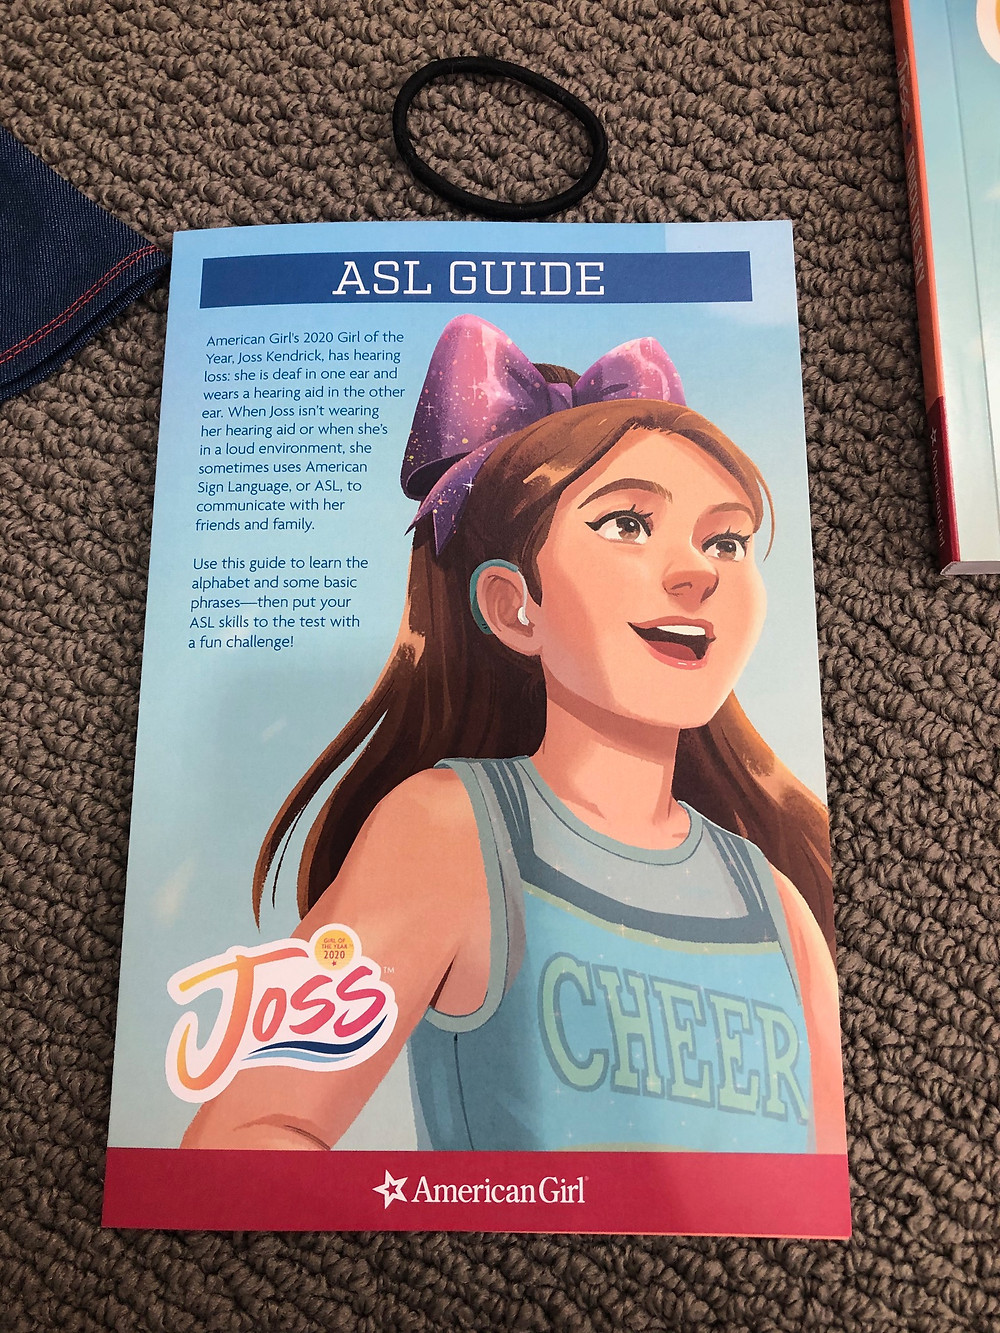 GOTY 2020, Girl of the Year 2020, Joss Kendrick, American Girl Joss, Joss American Girl, GOTY 2020 Joss, Joss Kendrick AG, Doll of the Year 2020, GOTY 2020, Girl of the Year 2020, Joss Kendrick, American Girl Joss, Joss American Girl, GOTY 2020 Joss, Joss Kendrick AG, Doll of the Year 2020, GOTY 2020, Girl of the Year, GOTY 2020, Girl of the Year 2020, Joss Kendrick, American Girl Joss, Joss American Girl, GOTY 2020 Joss, Joss Kendrick AG, Doll of the Year 2020, GOTY 2020, Girl of the Year 2020, Joss Kendrick, American Girl Joss, Joss American Girl, GOTY 2020 Joss, Joss Kendrick AG, Doll of the Year 2020, GOTY 2020, Girl of the Year GOTY 2020, Girl of the Year 2020, Joss Kendrick, American Girl Joss, Joss American Girl, GOTY 2020 Joss, Joss Kendrick AG, Doll of the Year 2020, GOTY 2020, Girl of the Year 2020, Joss Kendrick, American Girl Joss, Joss American Girl, GOTY 2020 Joss, Joss Kendrick AG, Doll of the Year 2020, GOTY 2020, Girl of the Year